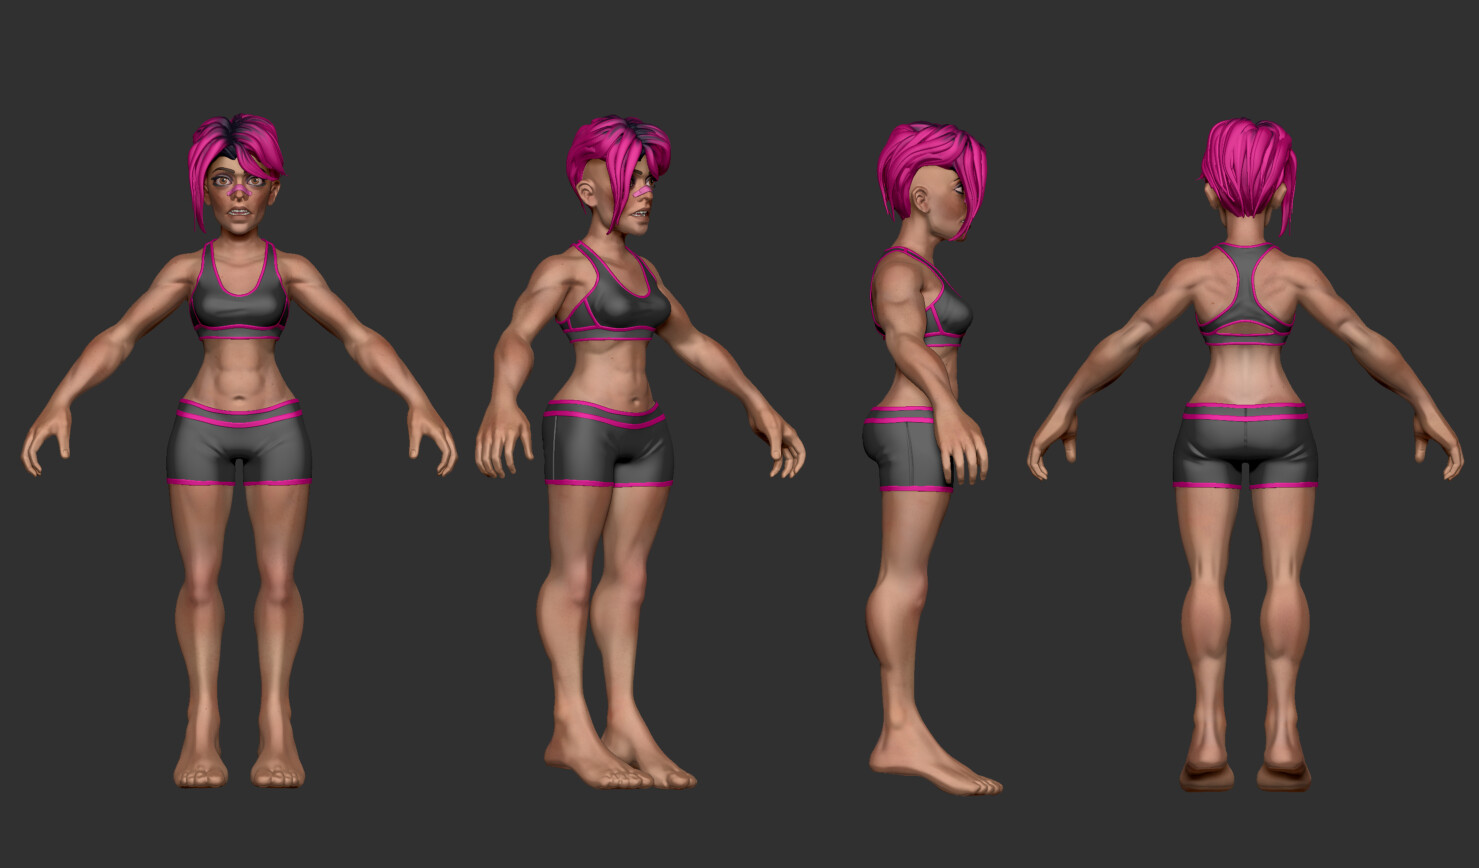 Highres sculpt wit polypaint in ZBrush